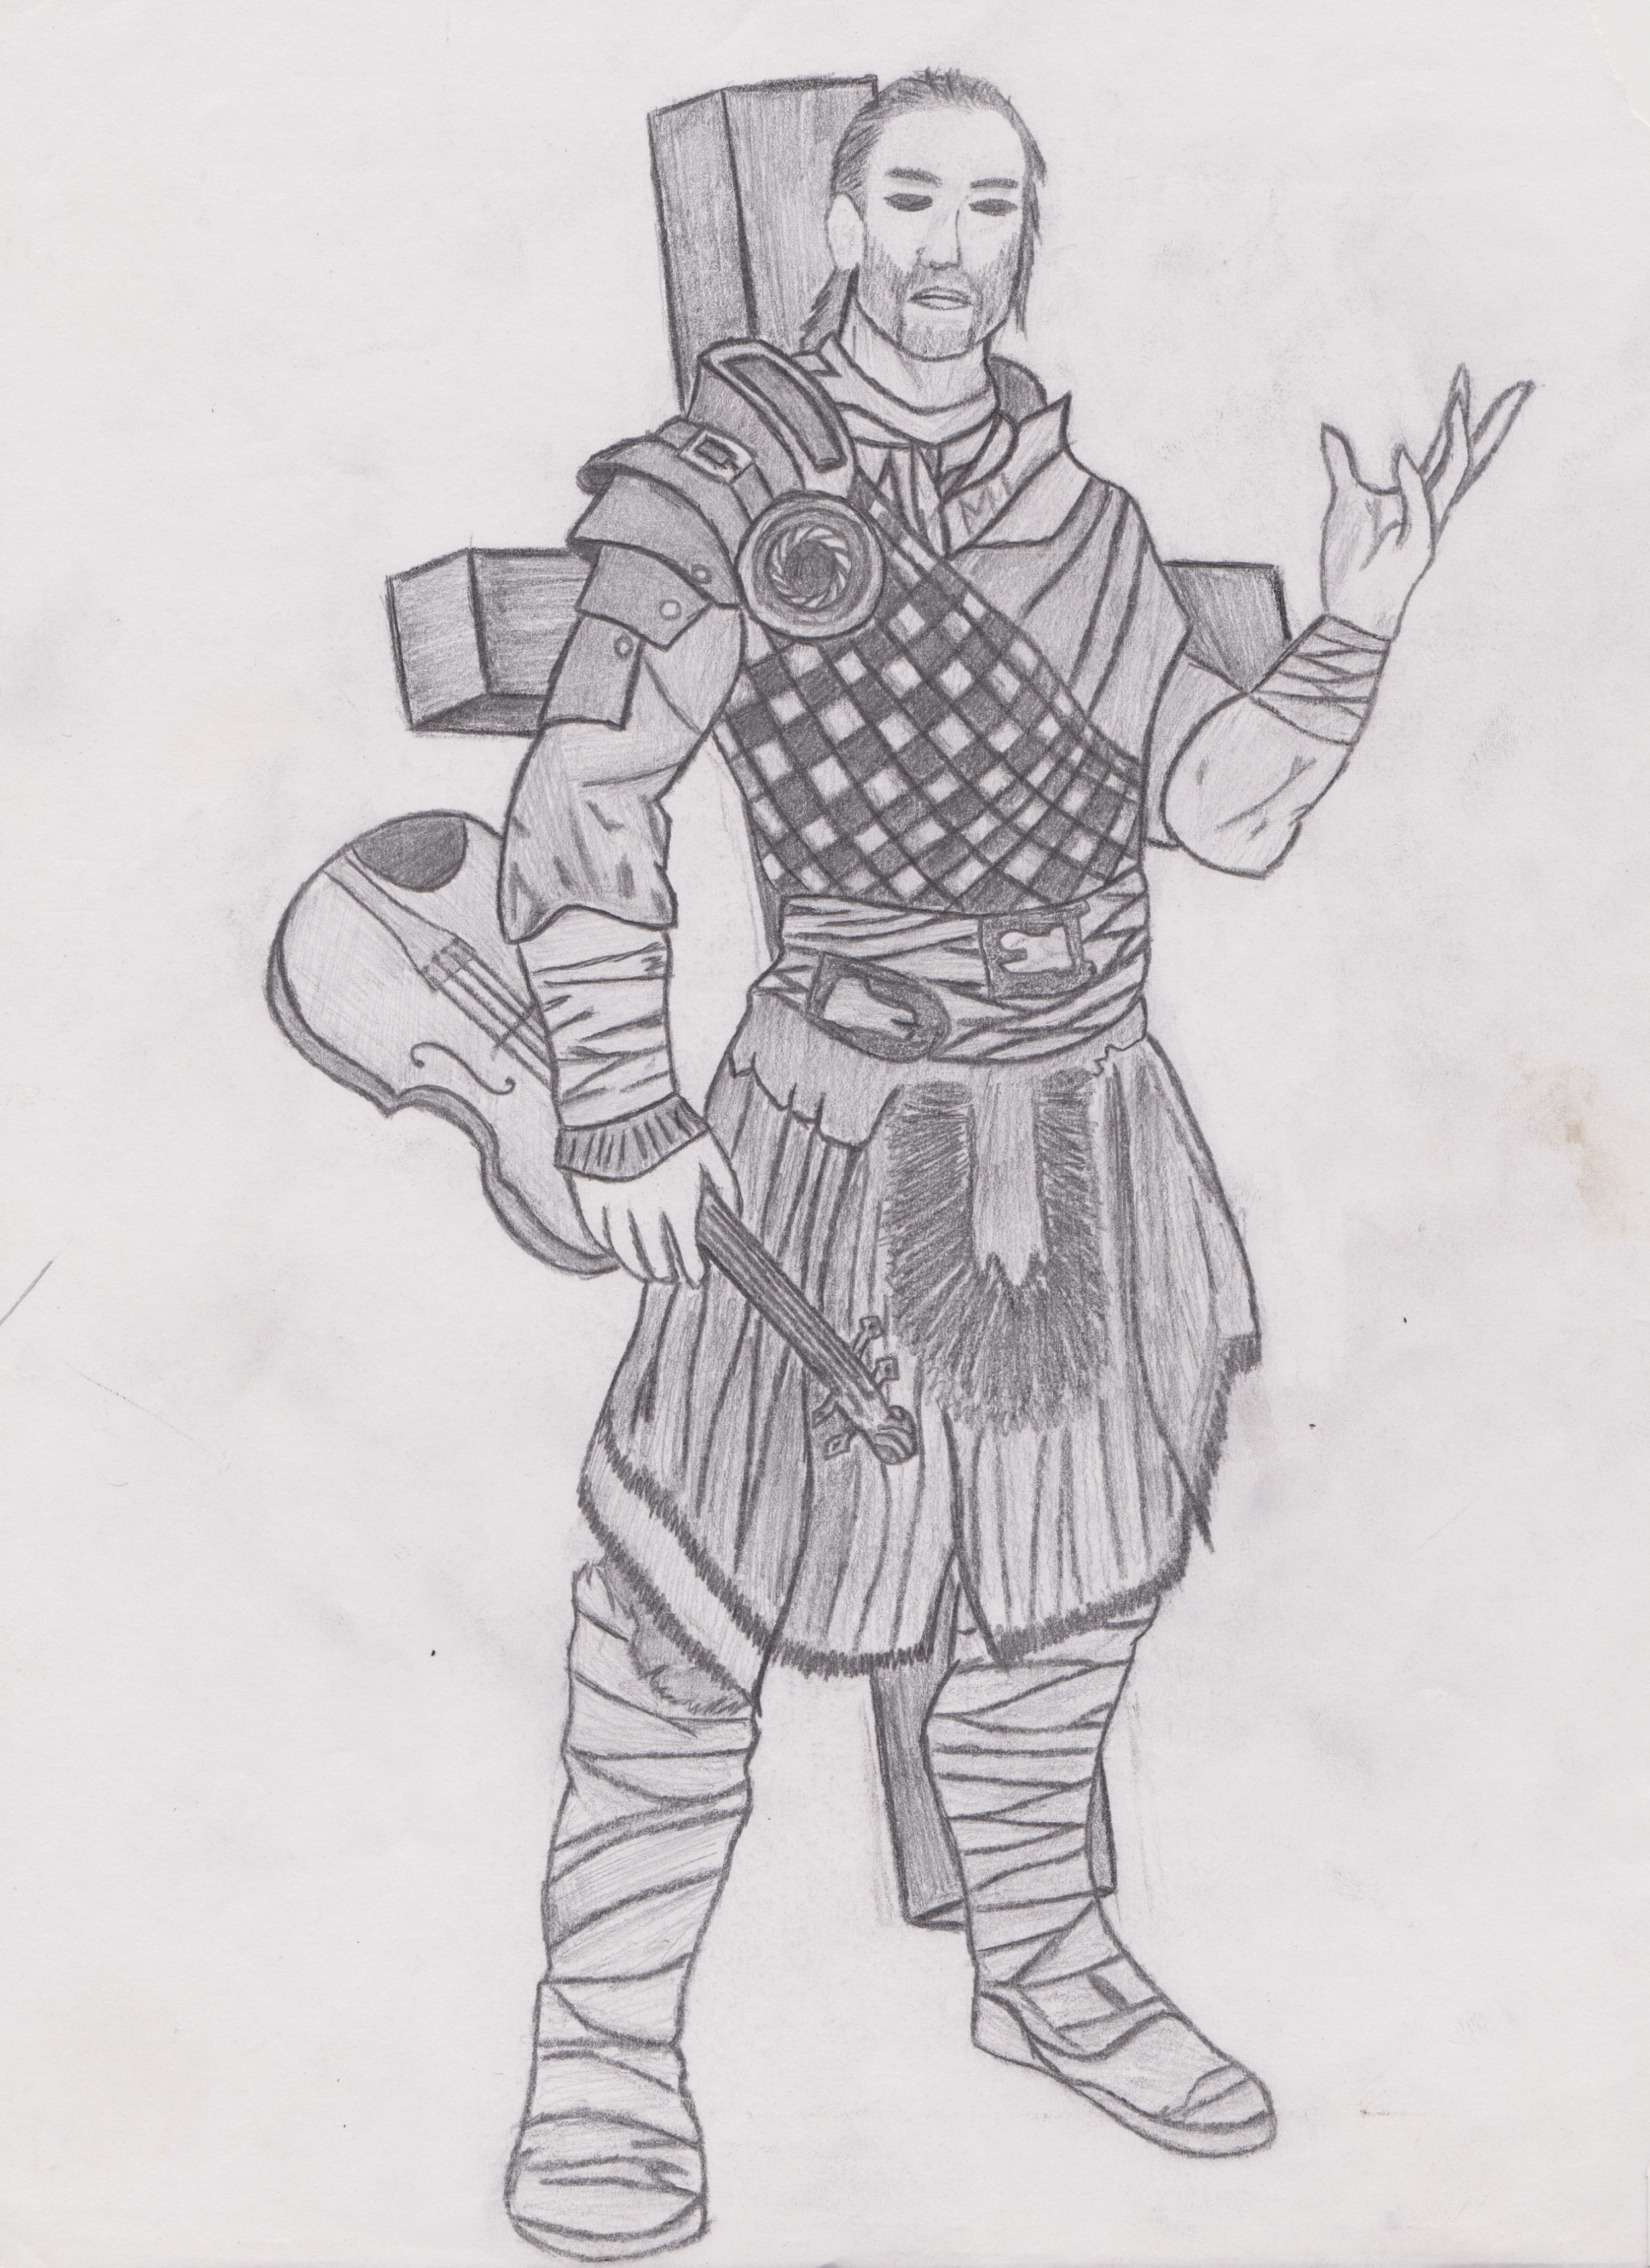 Dash the Bard -   Dash the Bard was a lot of fun. You see he was a paladin of a trickster god. I only used him while playing in the module Castle Ravenloft. Which I highly recommend to any D&D players from the advanced edition of D&D on. He earned his title The Bard because he was a really chill guy who could calm a Balor demon down with his words, and happened to like playing his violin for anyone who cared to listen. However, he was most certainly not of the Bard Class.   Using a series of feats from the Book of Exalted Deeds (3.5) and combining them with a Vow of Poverty, and the Vow of Peace forced for a rather unique playing experience. For anyone, or anything that was within a 20ft radius of Dash would have to pass a 21 will save or be compelled to be nonviolent. Of course this would fall apart if anyone within that radius was harmed. Instantly that aura of calm would be dispelled. Therefore, in a sincere campaign module where you are intended to fight a myriad of monsters and people this was unexpected. Almost every confrontation would be met with a Mexican standoff and usually through Diplomacy and Intimidation we were able to avoid 80% of conflicts. Even if they were mandatory.   Dash was retired after the module was completed.He spent the rest of his days nursing Strad Von Zeravitch who was perpetually in a vegetative state. We didn't kill him, and he was accidentally paralyzed for life. So, Dash took it upon himself to slowly try to save Strahd. I was told later by the D.M. that Dash was unsuccessful. And that cross you see on his back is actually the housing for a huge sized crossbow he carried around the entire campaign. Part of his penance. A fun character for sure!